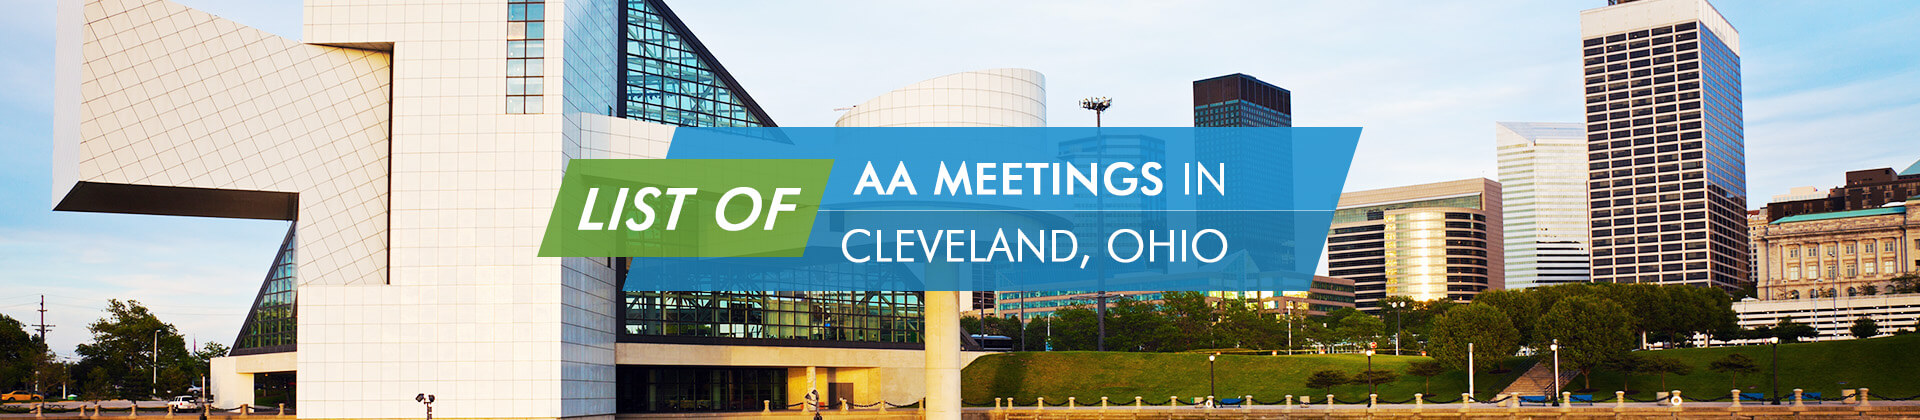 AA Meetings Cleveland Ohio